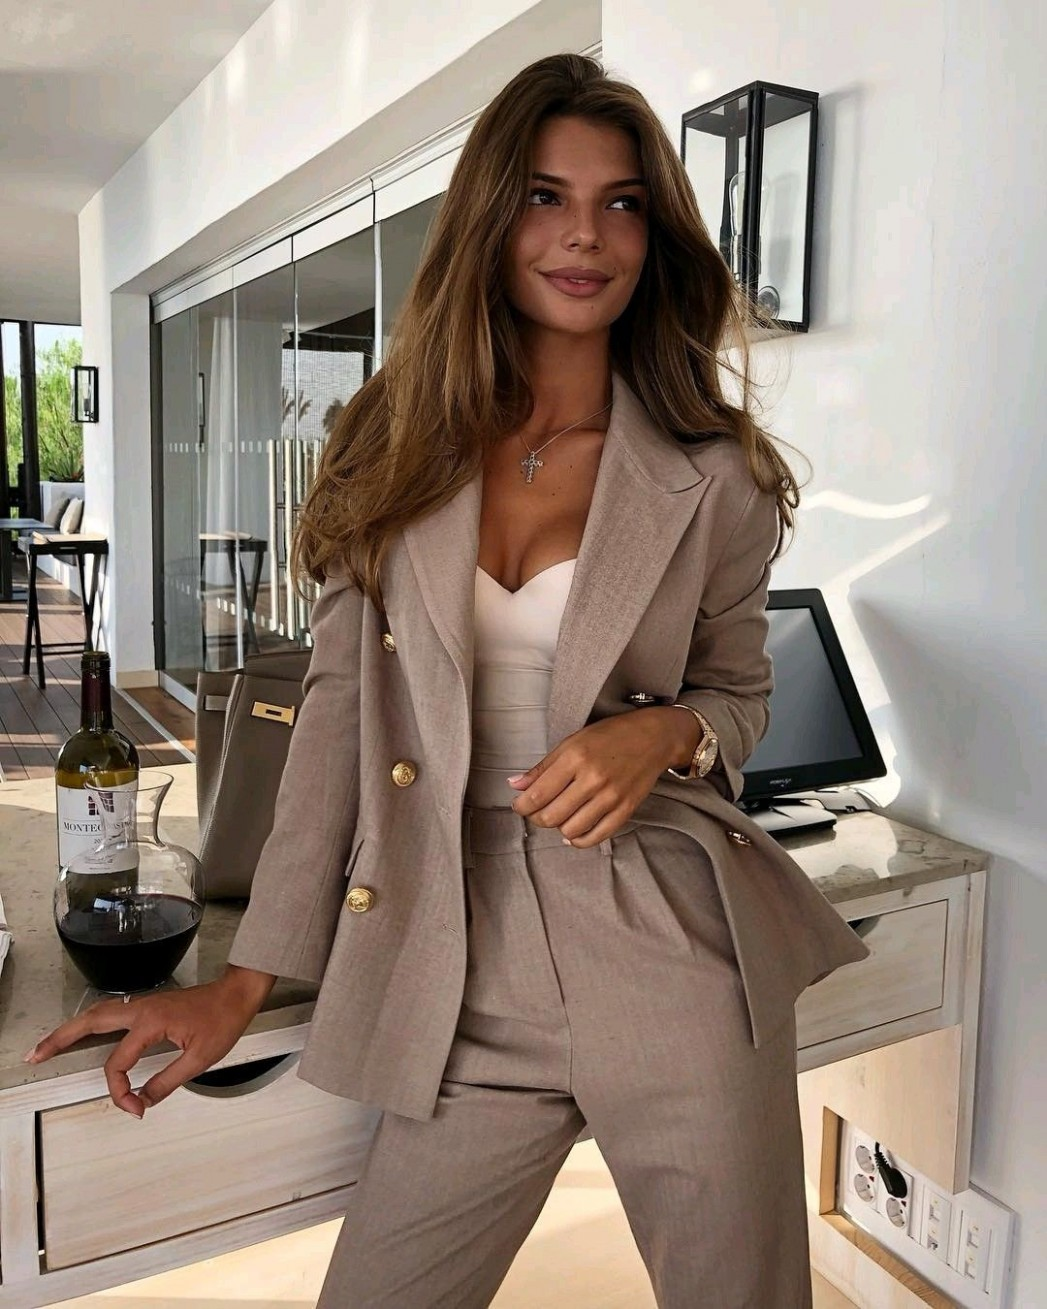 Workwear Women's Office Looks Classy Trendy Outfits, Classy Business Outfit Frau